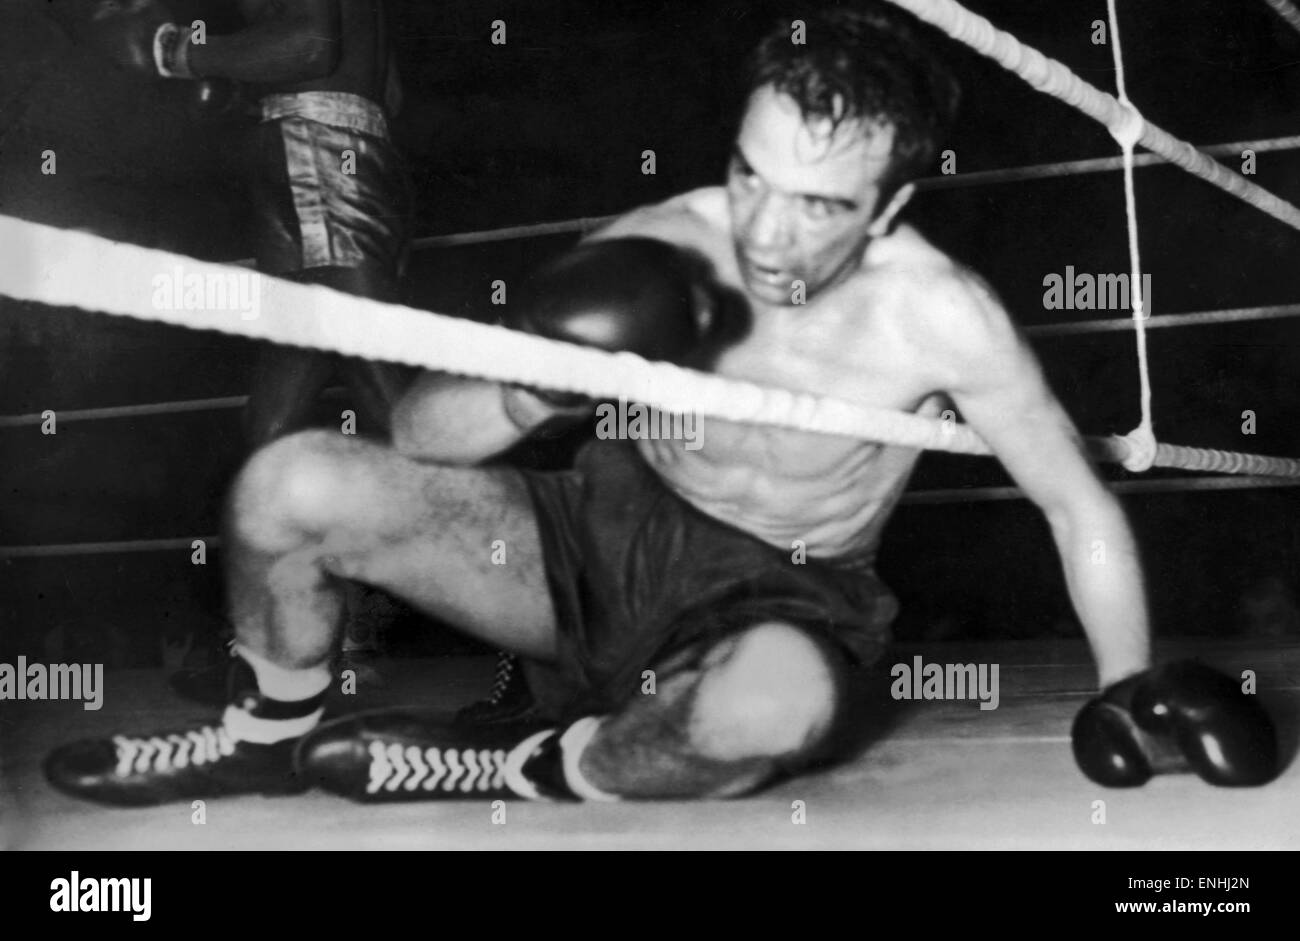 Charlie Hill boxer December 1957 Scots boxer against the ropes during fight - Stock Image